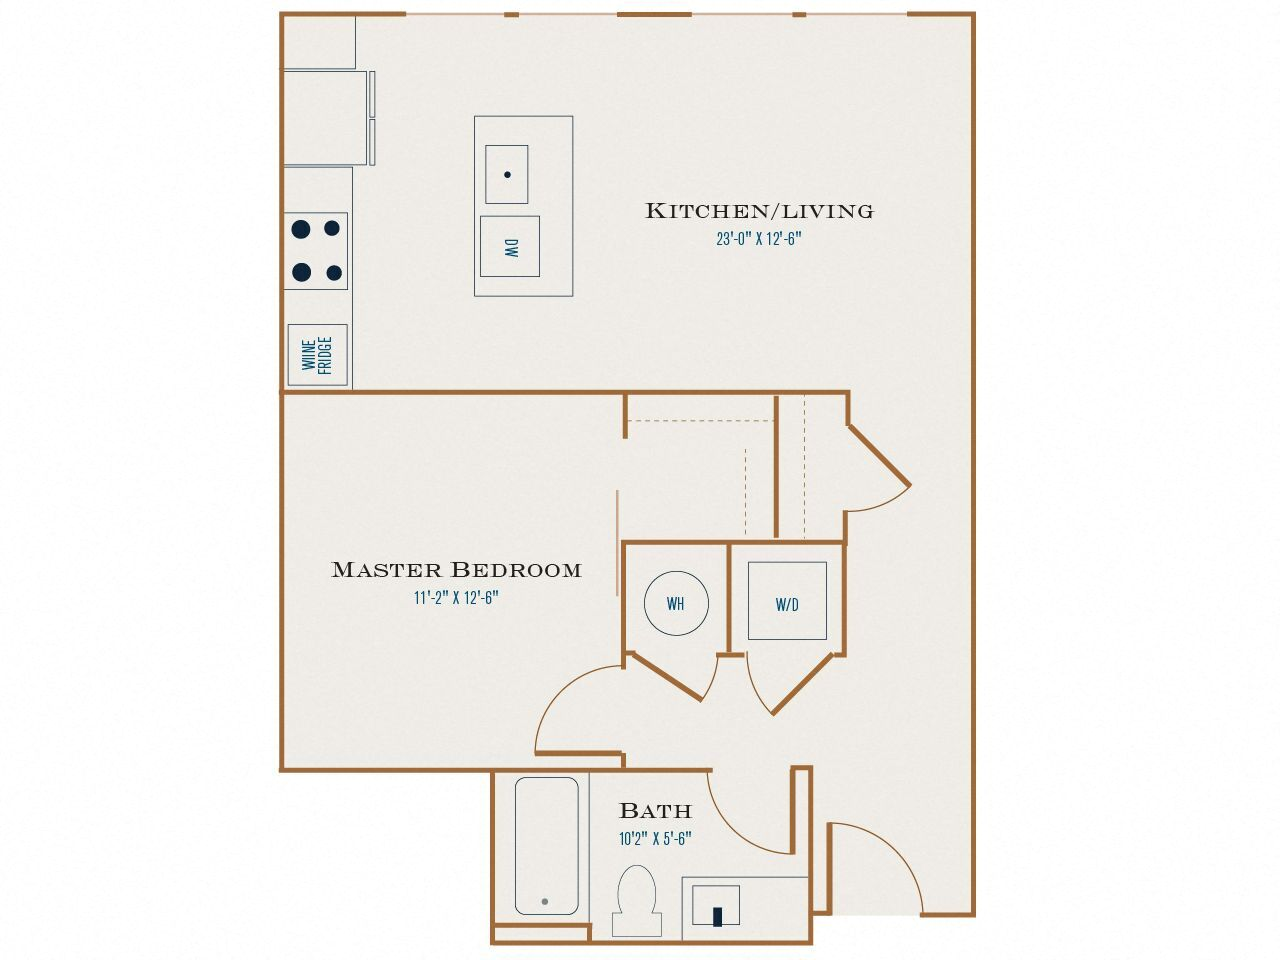 A Three floor plan diagram. One bedroom, one bathroom, an open kitchen and living area, and a washer dryer.